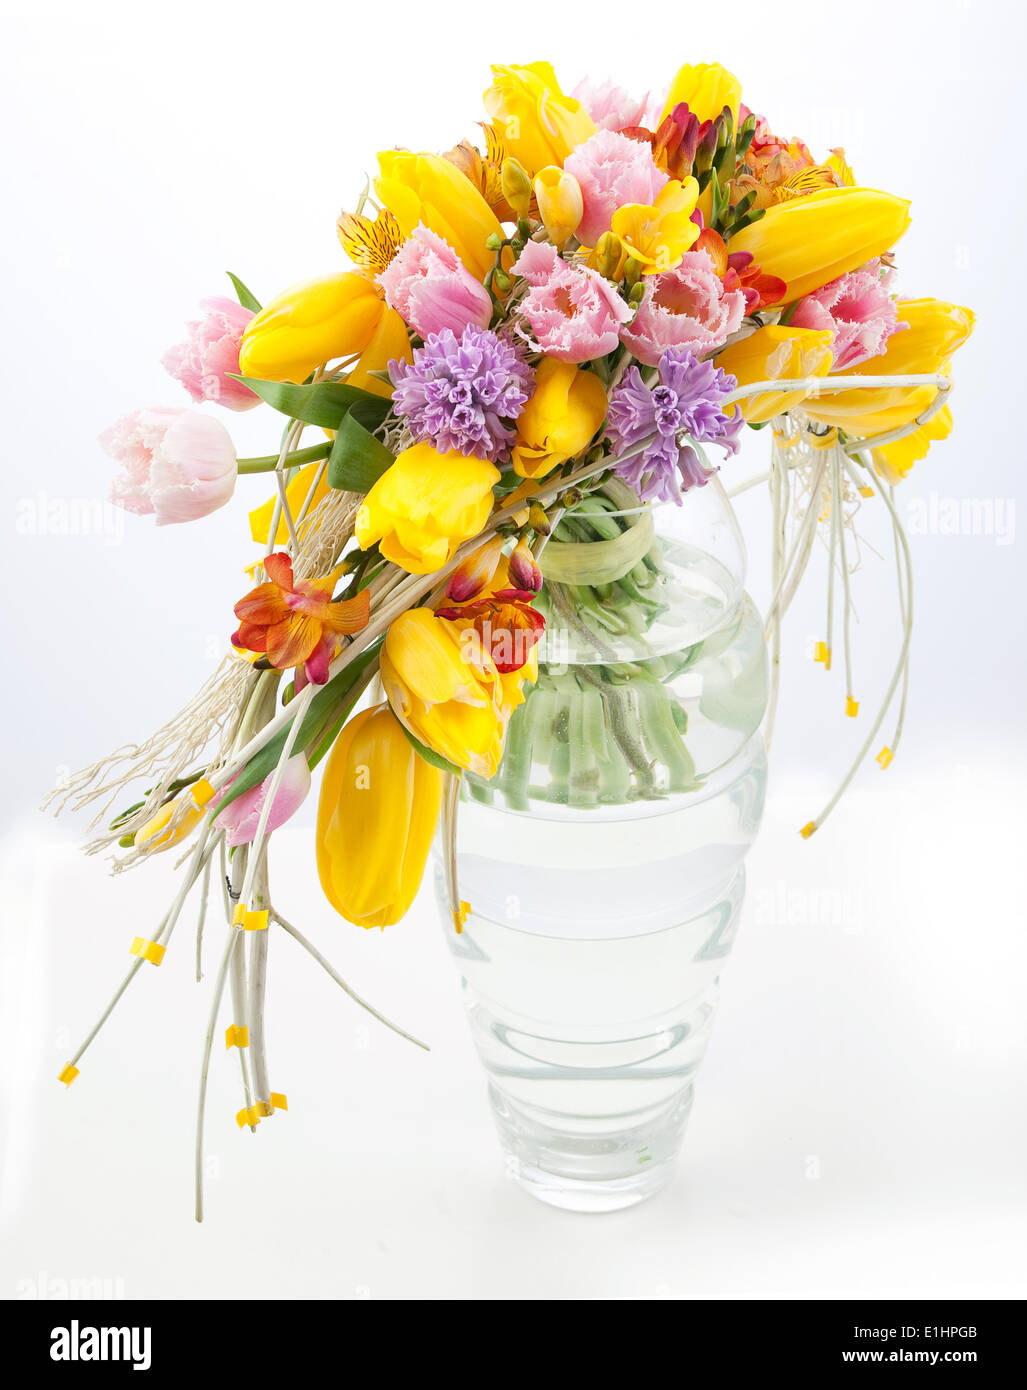 Colorful festive bouquet of spring flowers in glass vase over white ...